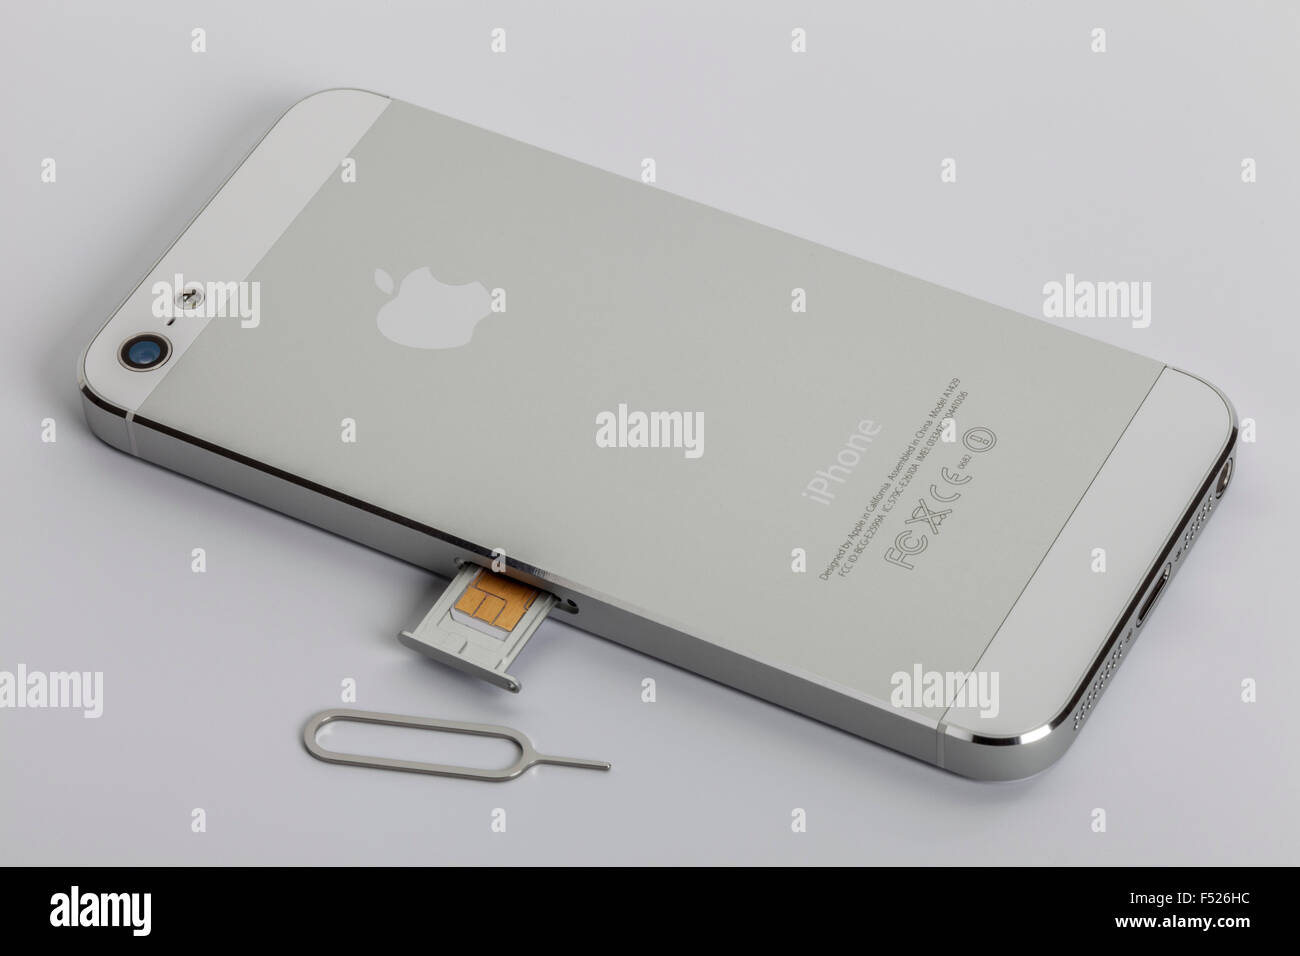 sim cards for iphone 5 apple iphone 5 back nano sim card tray tool stock photo 2783